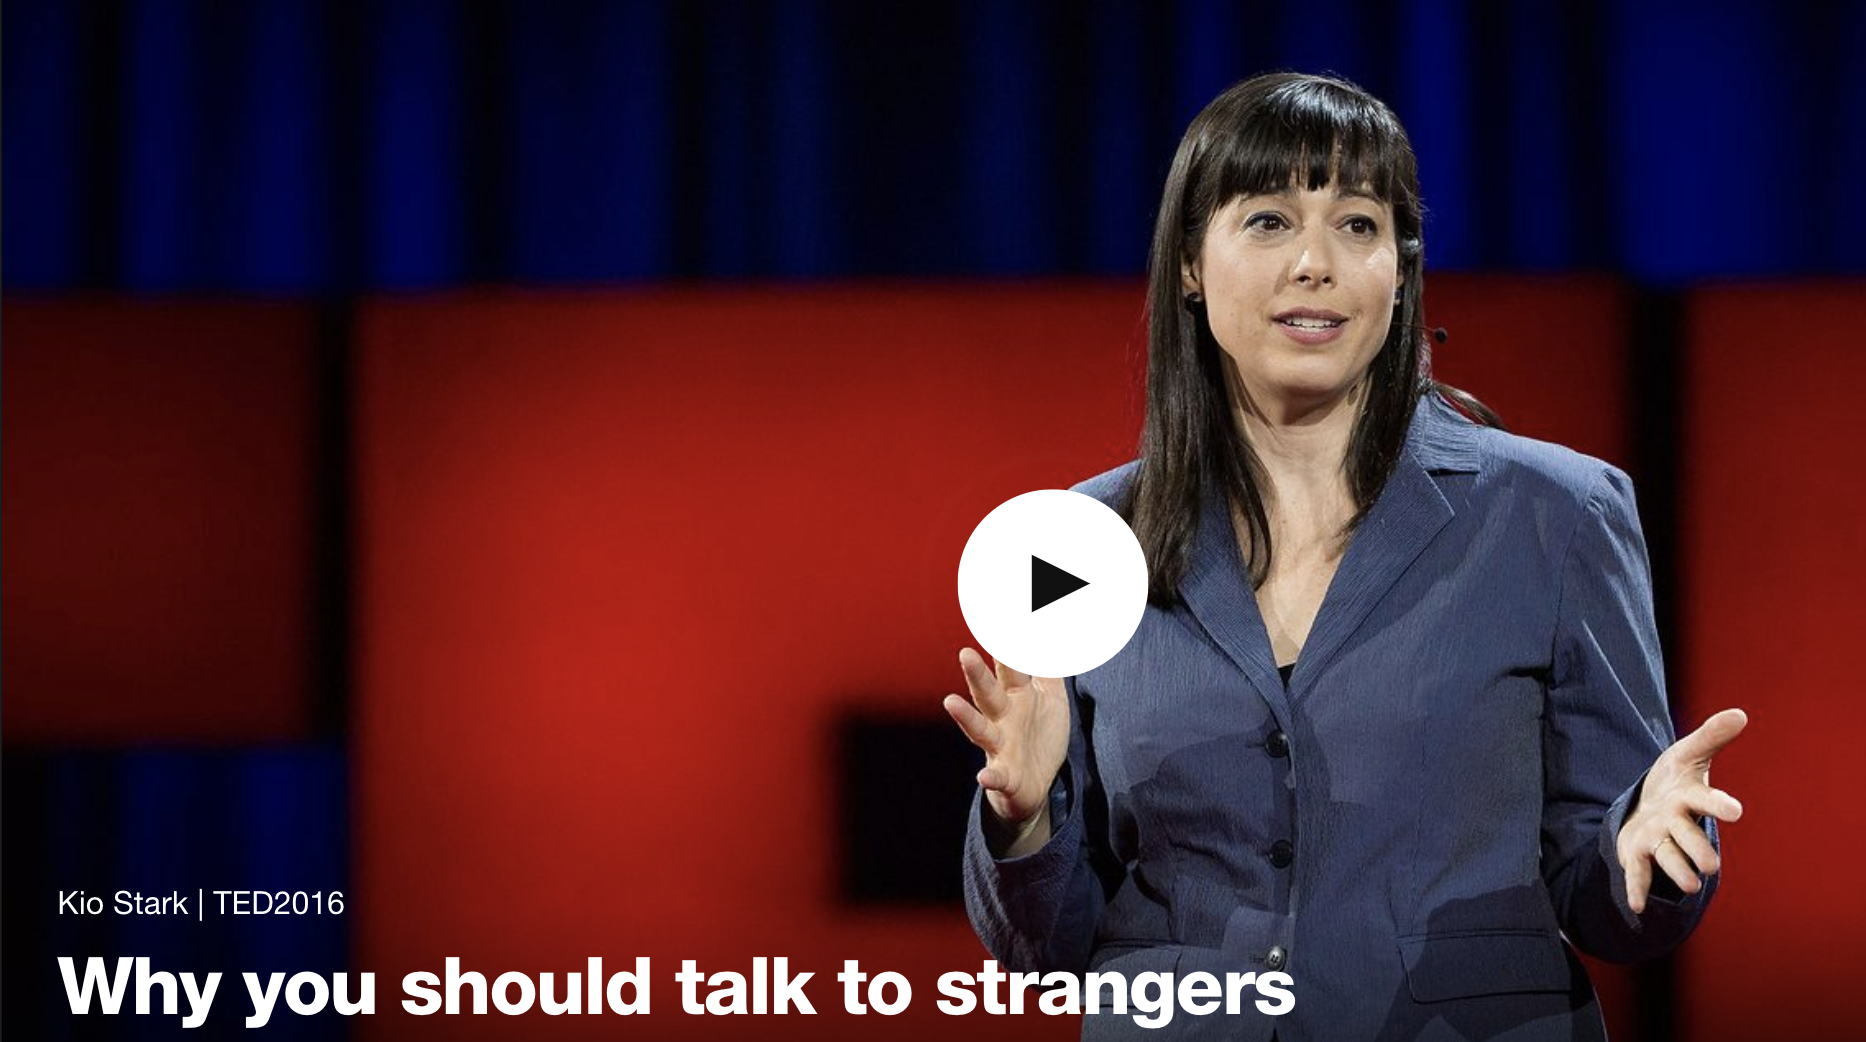 Video:  Kio Stark: Why you should talk to strangers? TEDx